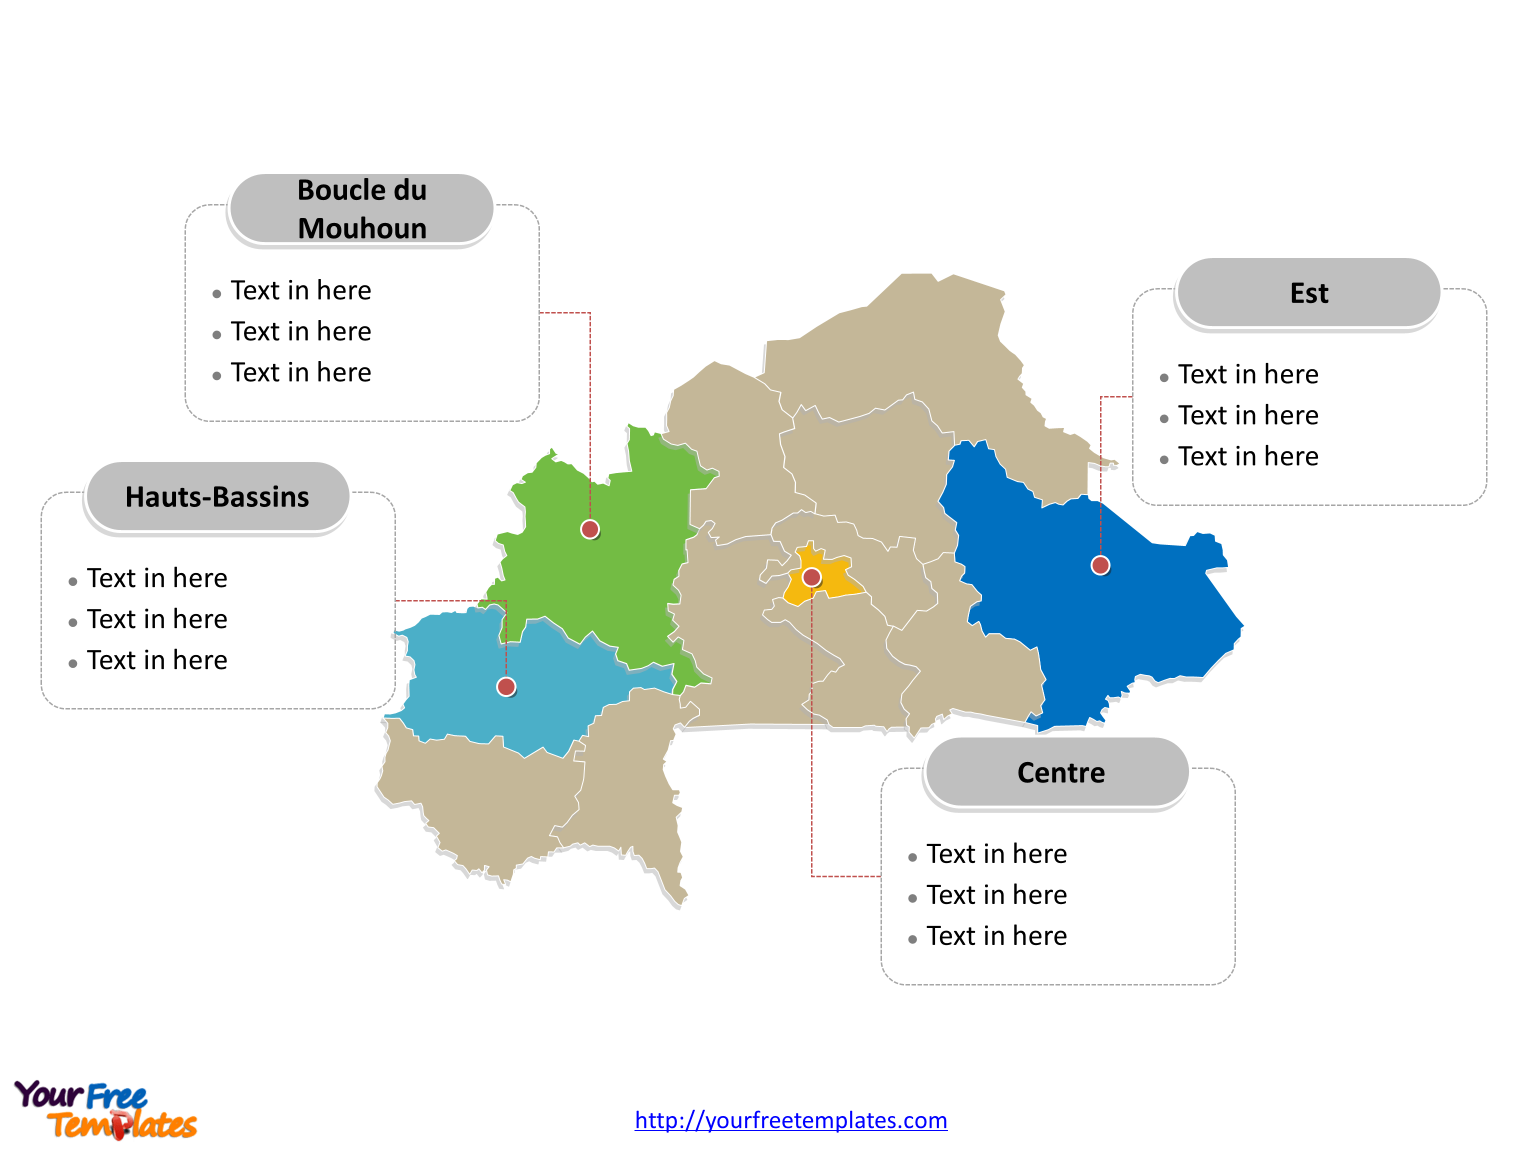 Burkina Faso map labeled with major political regions